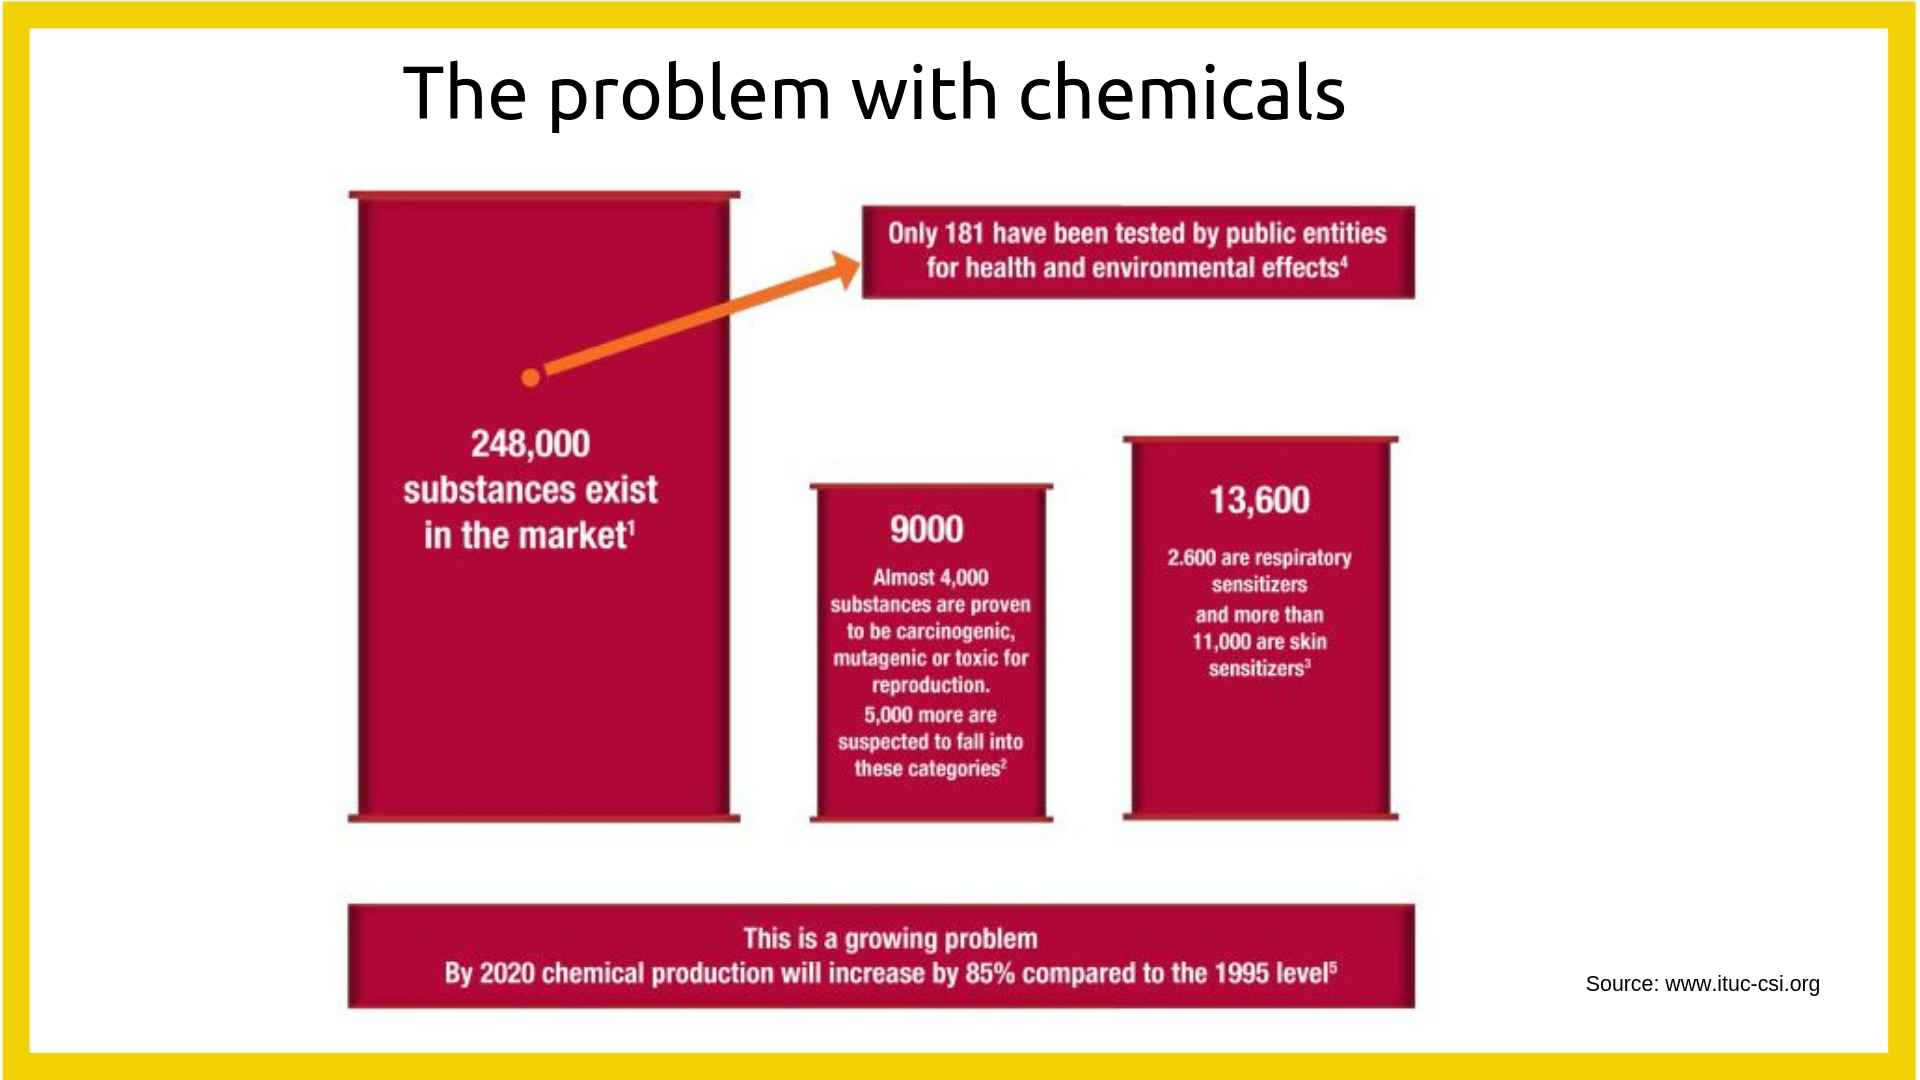 The problem with chemicals